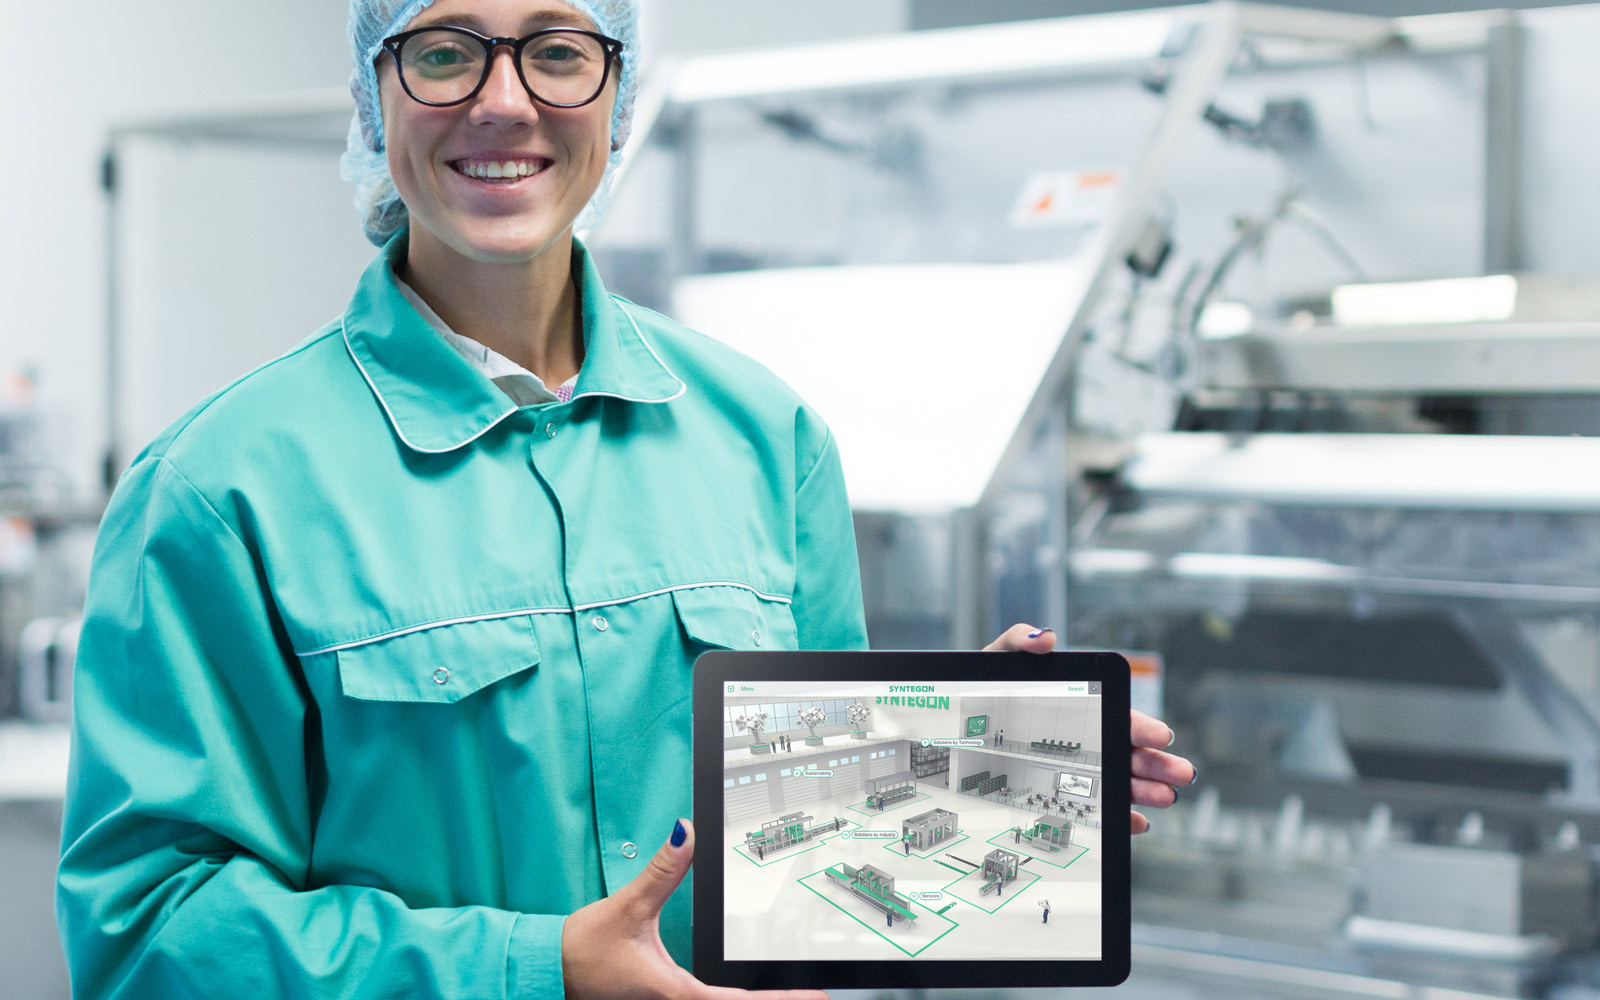 Syntegon employee smiling in manufacturing lab holding iPad showing touchscreen interactive presentation